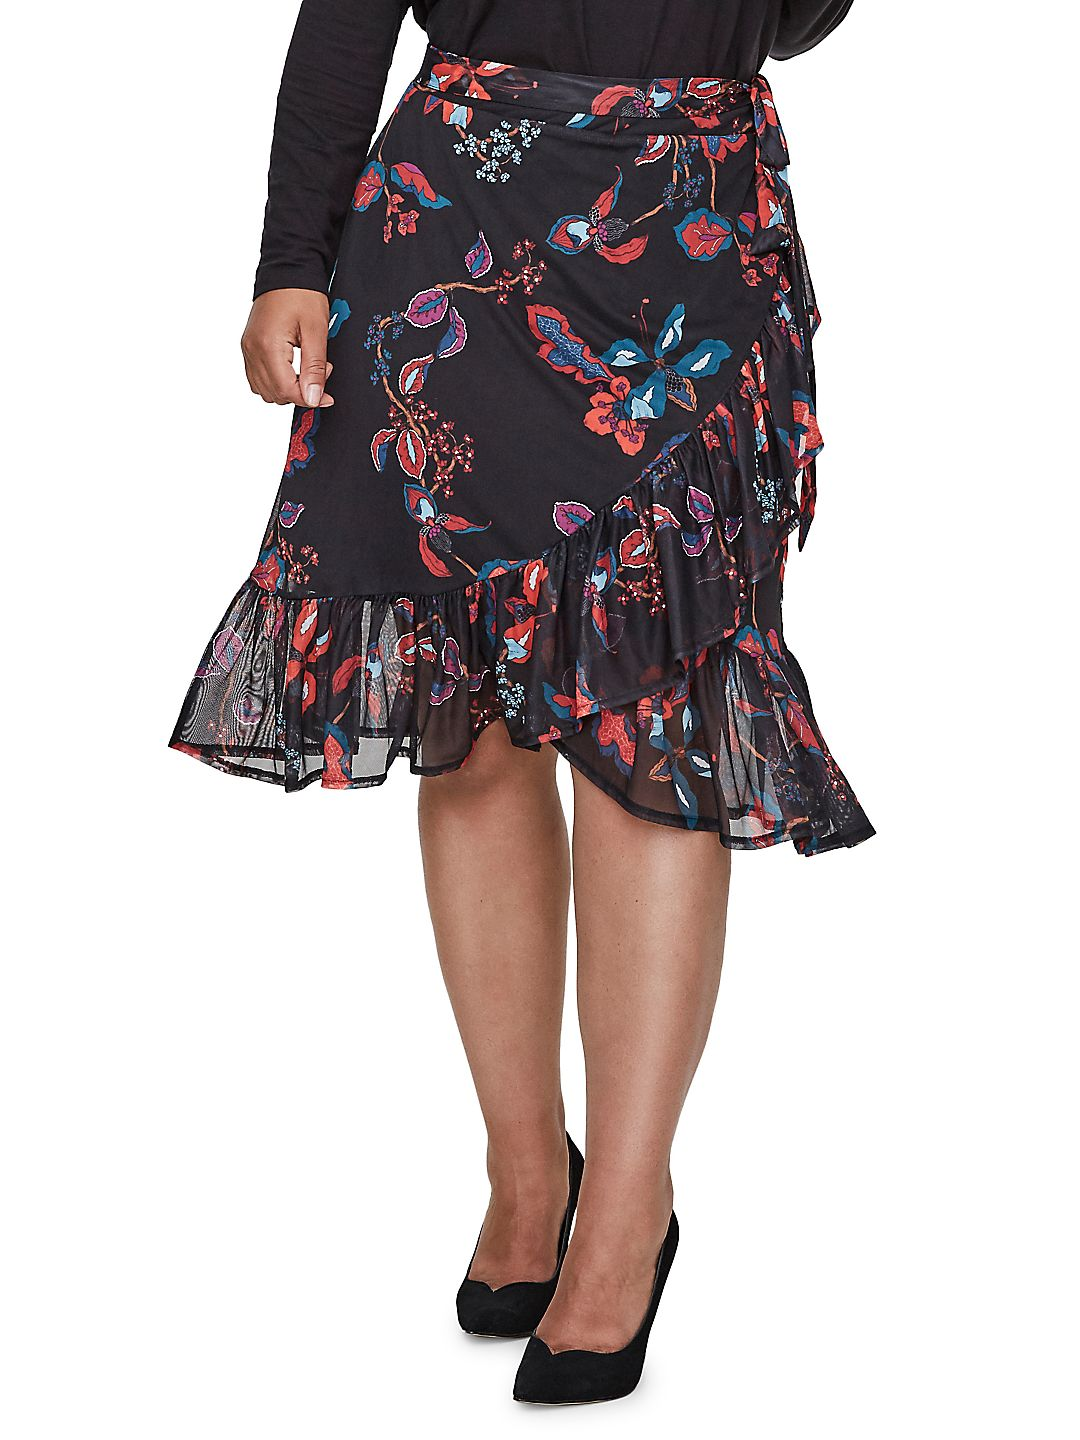 Plus #418 Tonic Floral Knee-Length Skirt